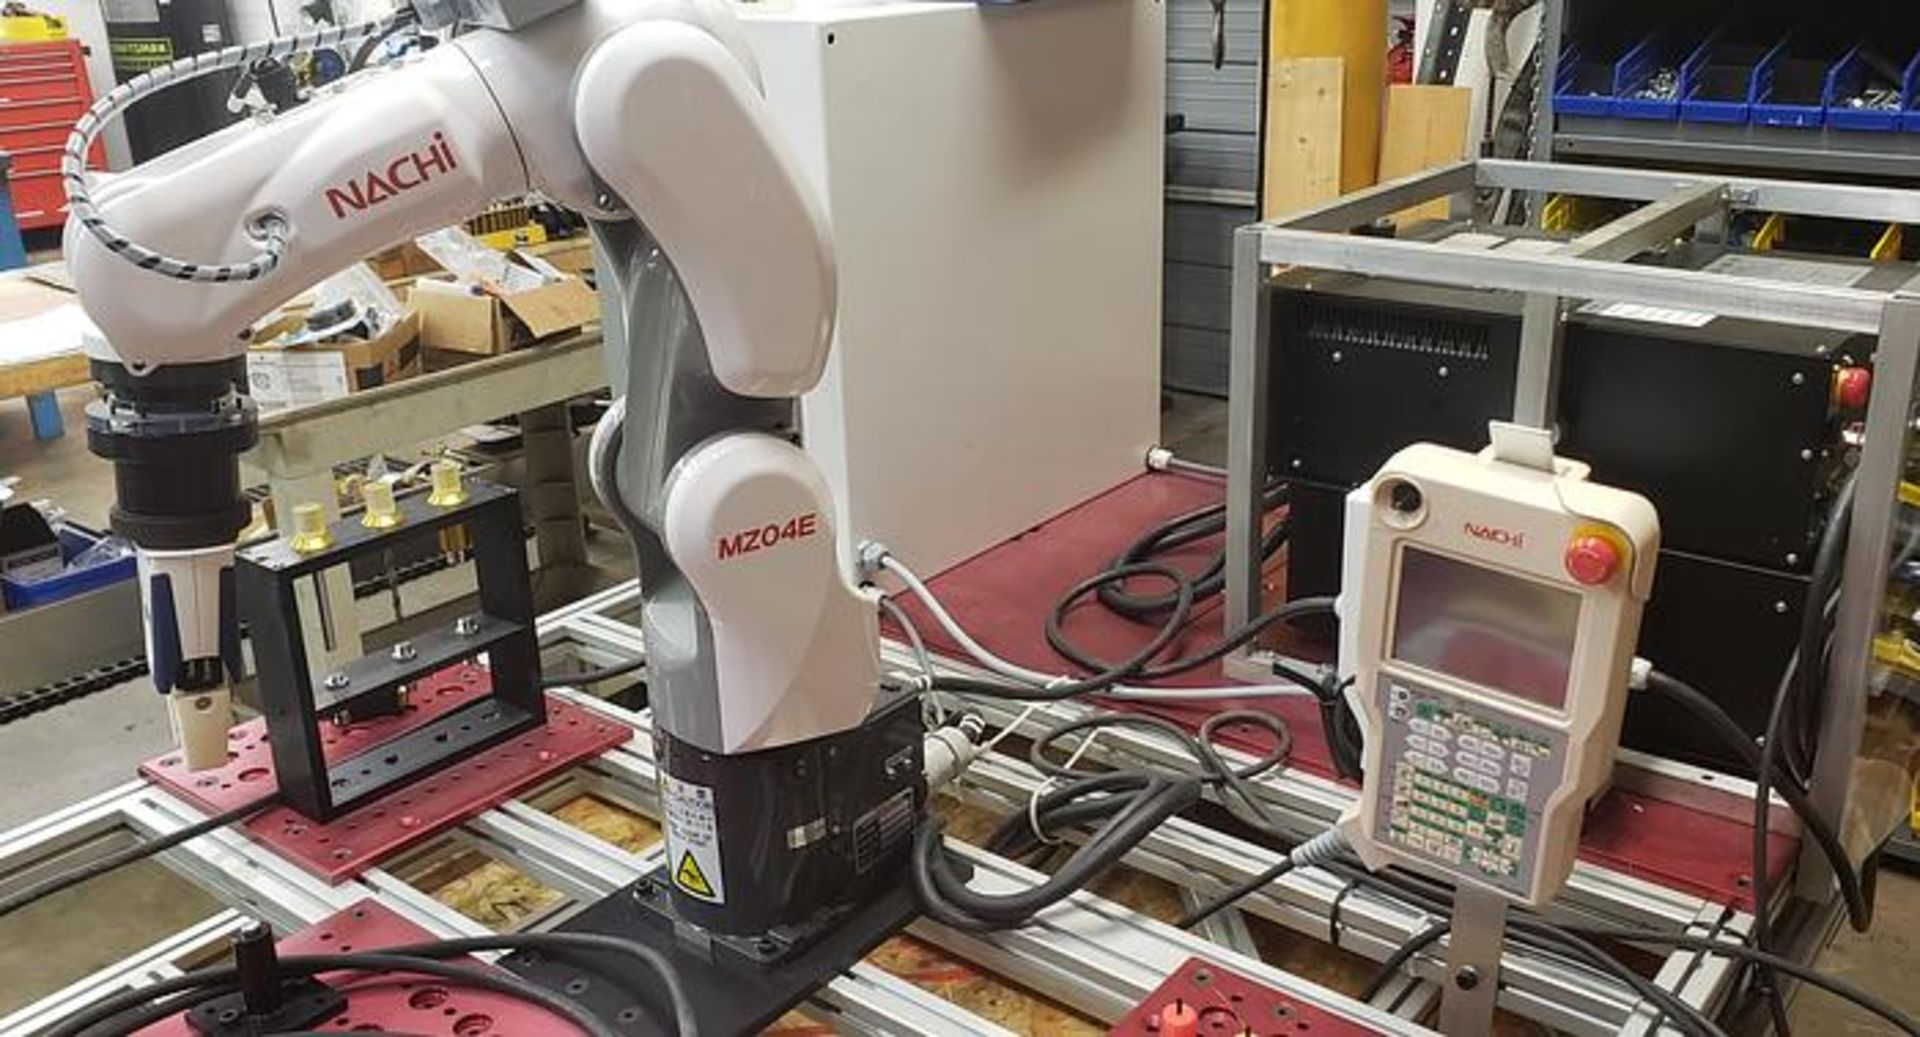 NACHI MZ04E 6 AXIS CNC COLLABRATIVE ROBOT 4 KG X 541 MM REACH NEVER USED BUILT 2018 - Image 2 of 8